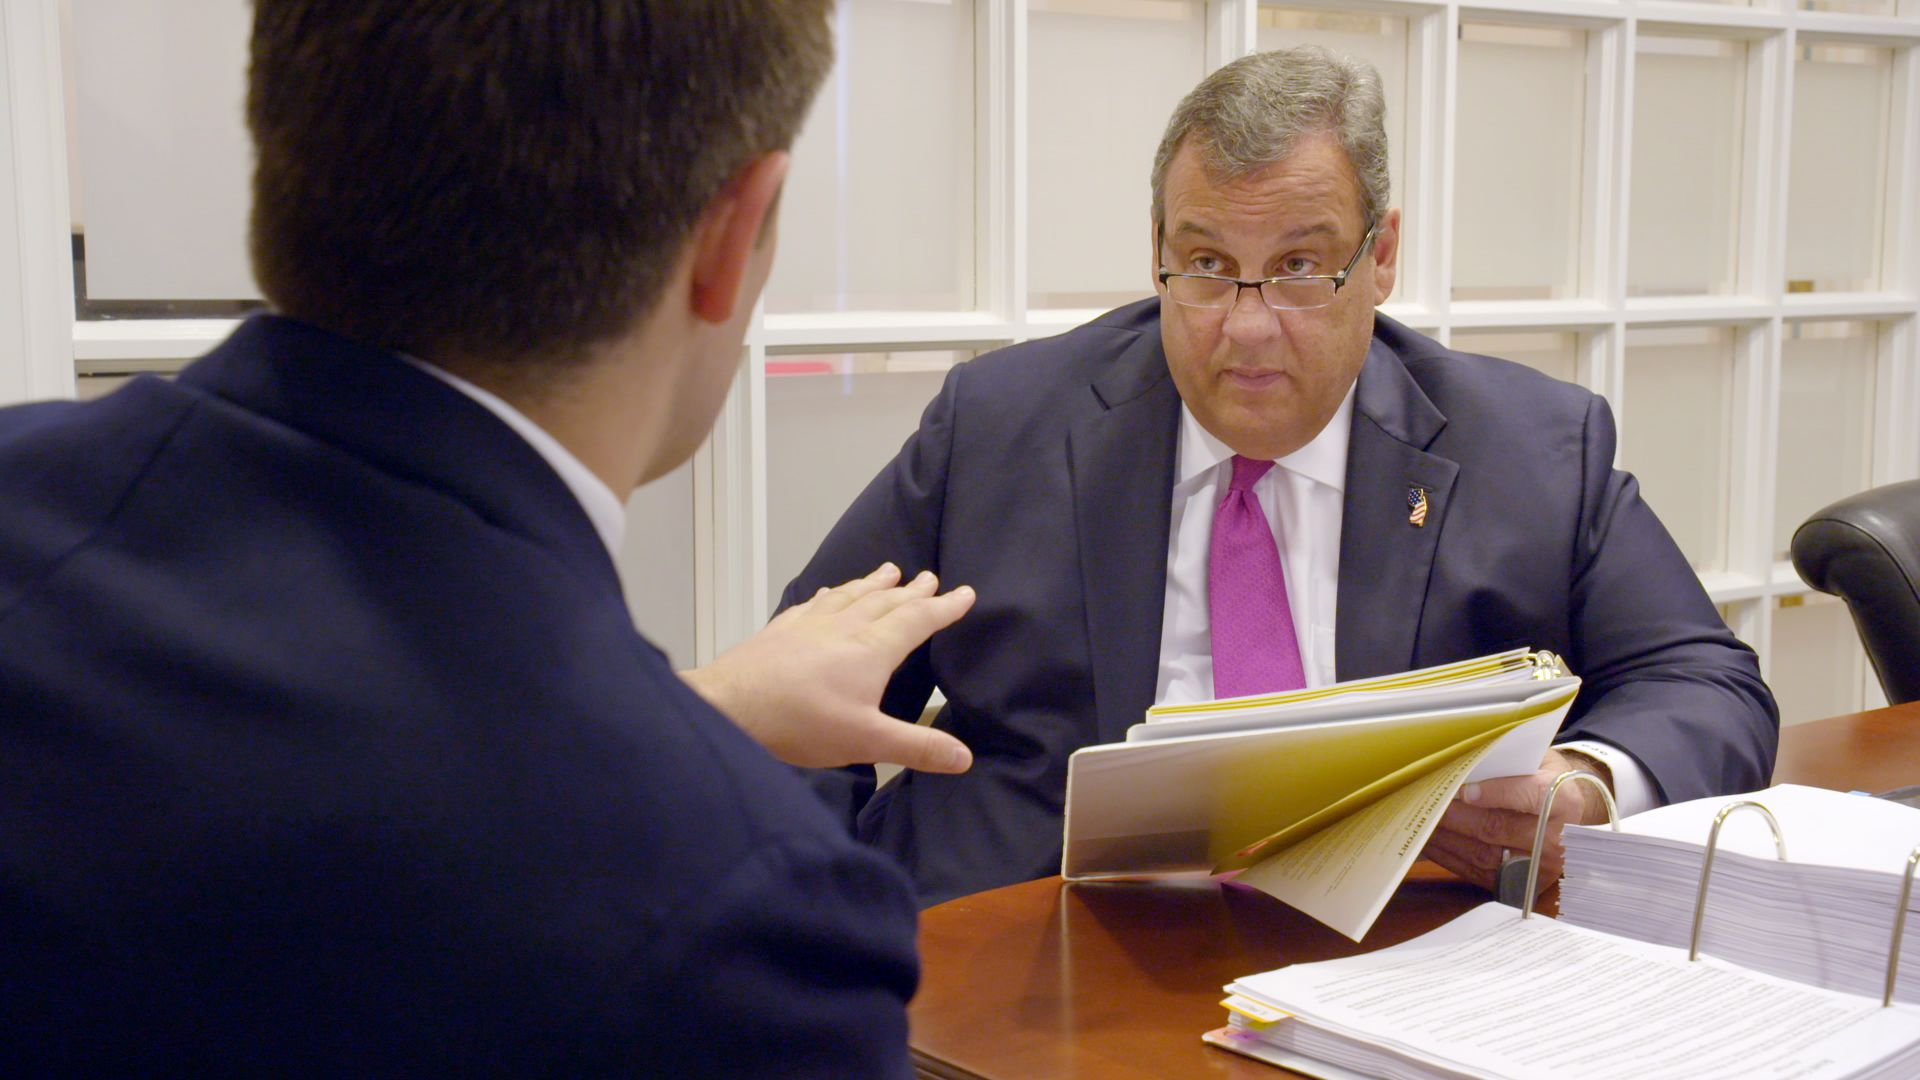 Chris Christie confronted with his own vetting dossier from the Trump transition